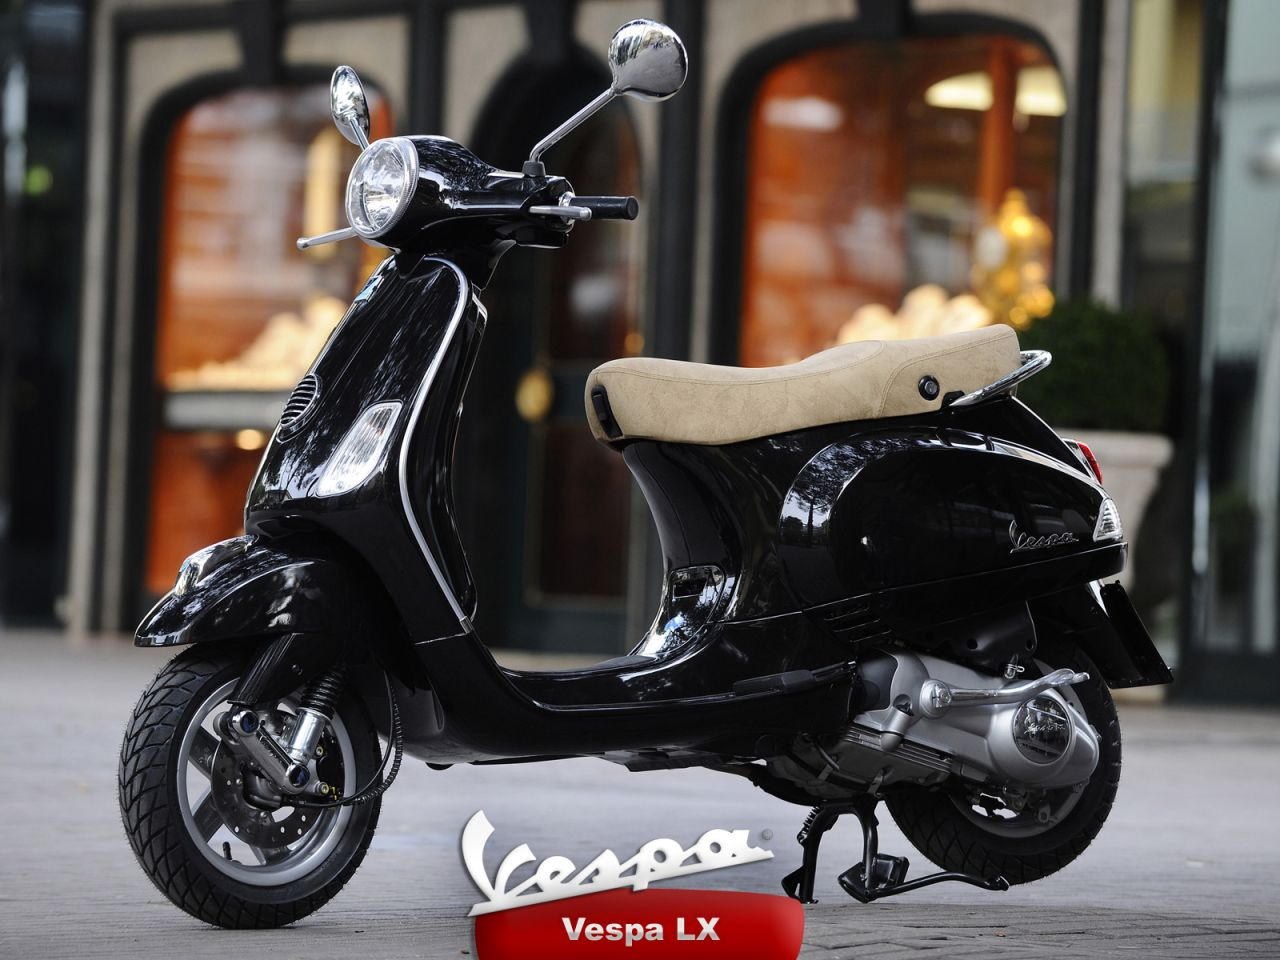 vespa lx 125 piaggio vespa motor scooter dealer resmi. Black Bedroom Furniture Sets. Home Design Ideas